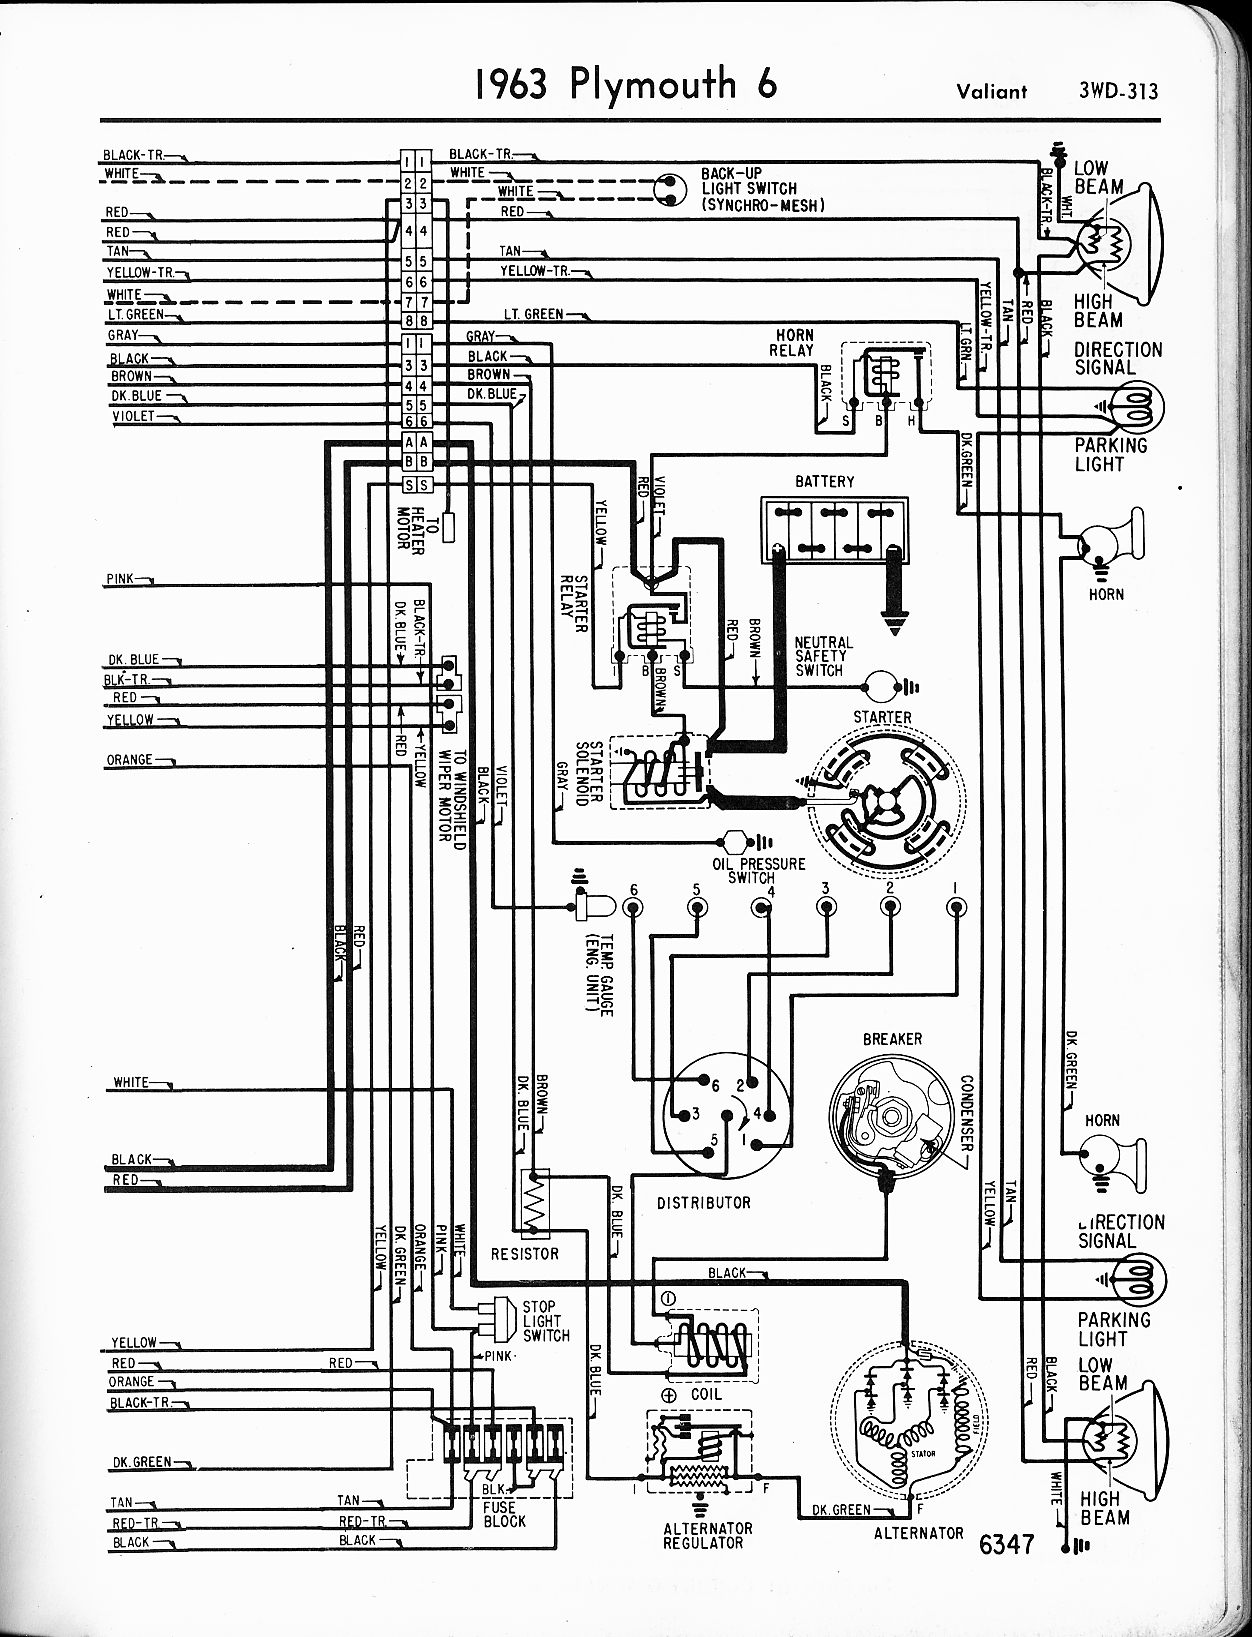 1966 Plymouth Barracuda Fuse Box Wiring Reinvent Your Diagram 1965 Dodge Dart 1964 Valiant Schematics Diagrams U2022 Rh Parntesis Co 1971